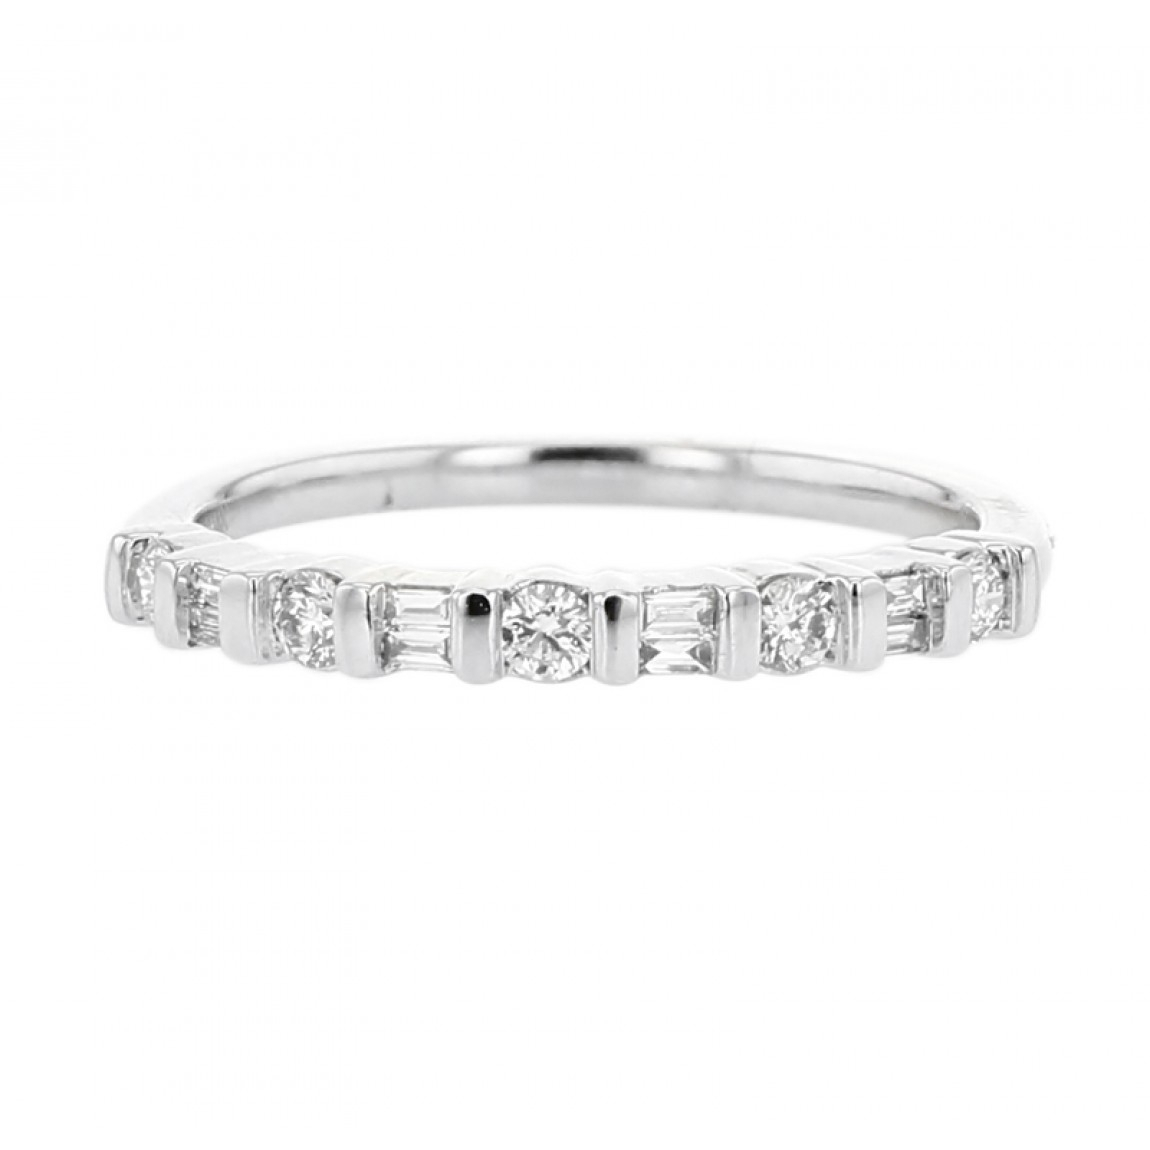 Diamond Wedding Band Ring, Half Eternity, Alternating Round And Baguette,  Bar Set, 14K Gold, .25Ct With Regard To Most Up To Date Baguette Cut Single Diamond Wedding Bands (Gallery 14 of 25)